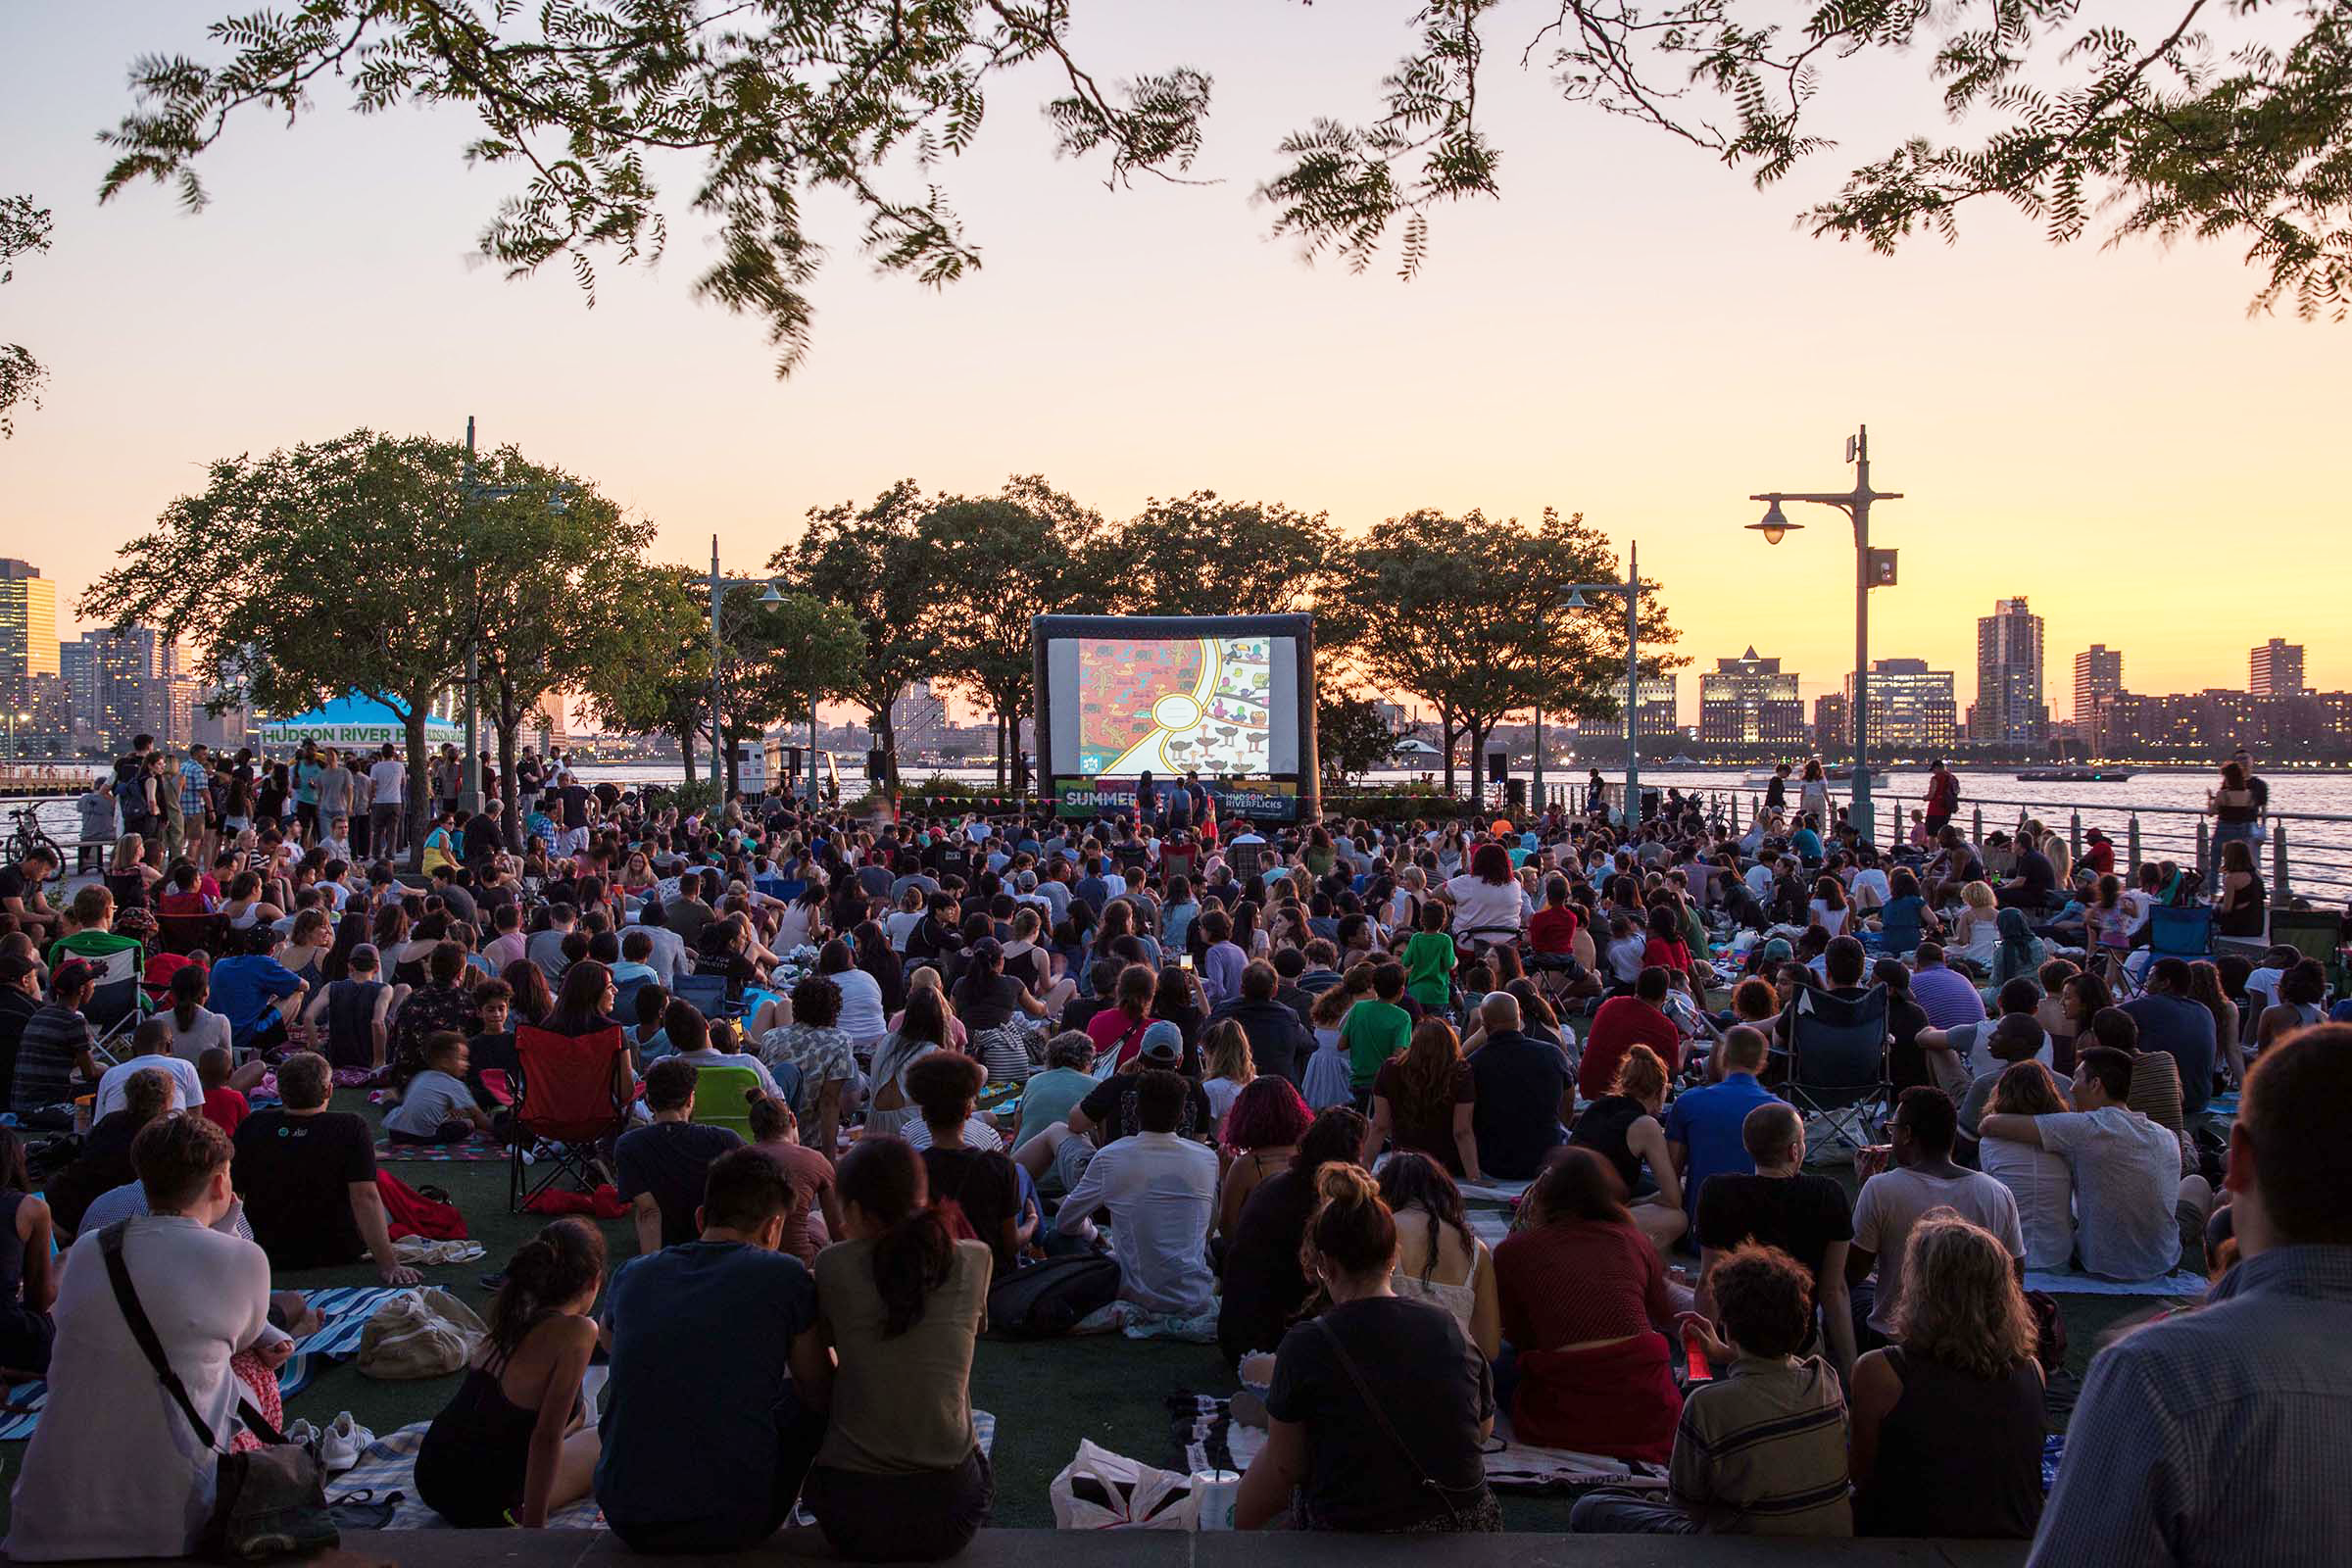 A large group of visitors enjoy the movie at Pier 46